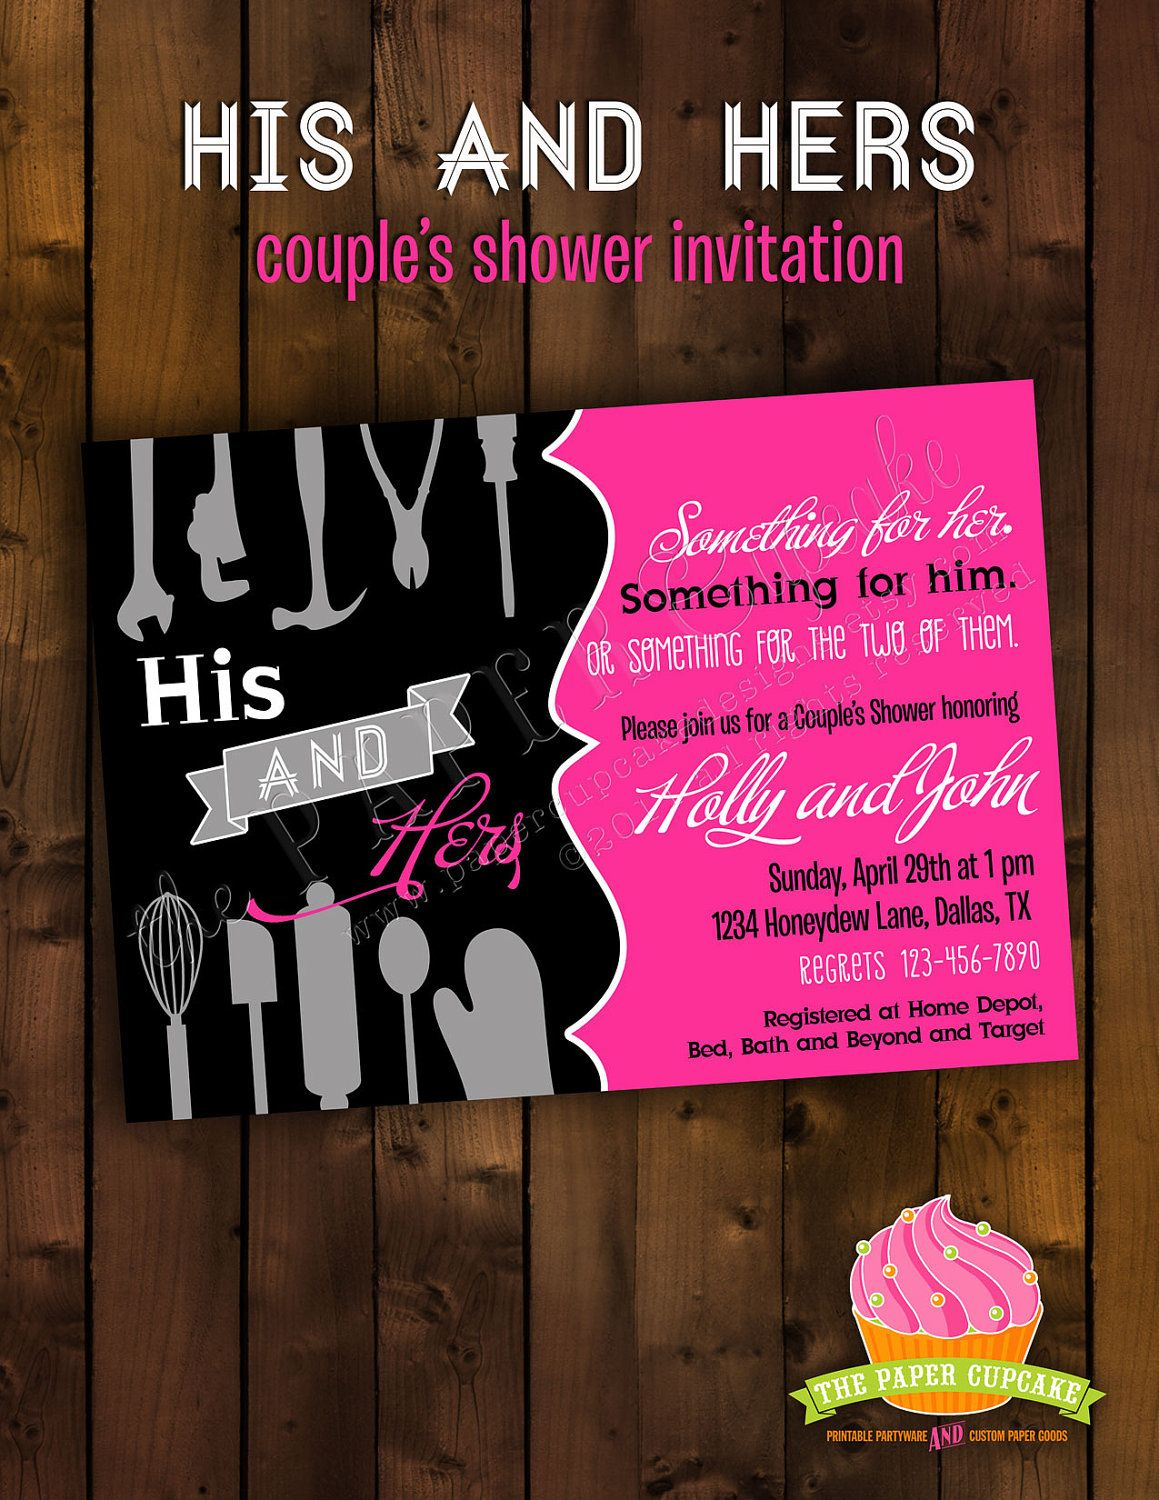 Couples Wedding Shower Invitations Wording Printable Bridal Shower  Invitation Design His And Hers Couple U S Bridal